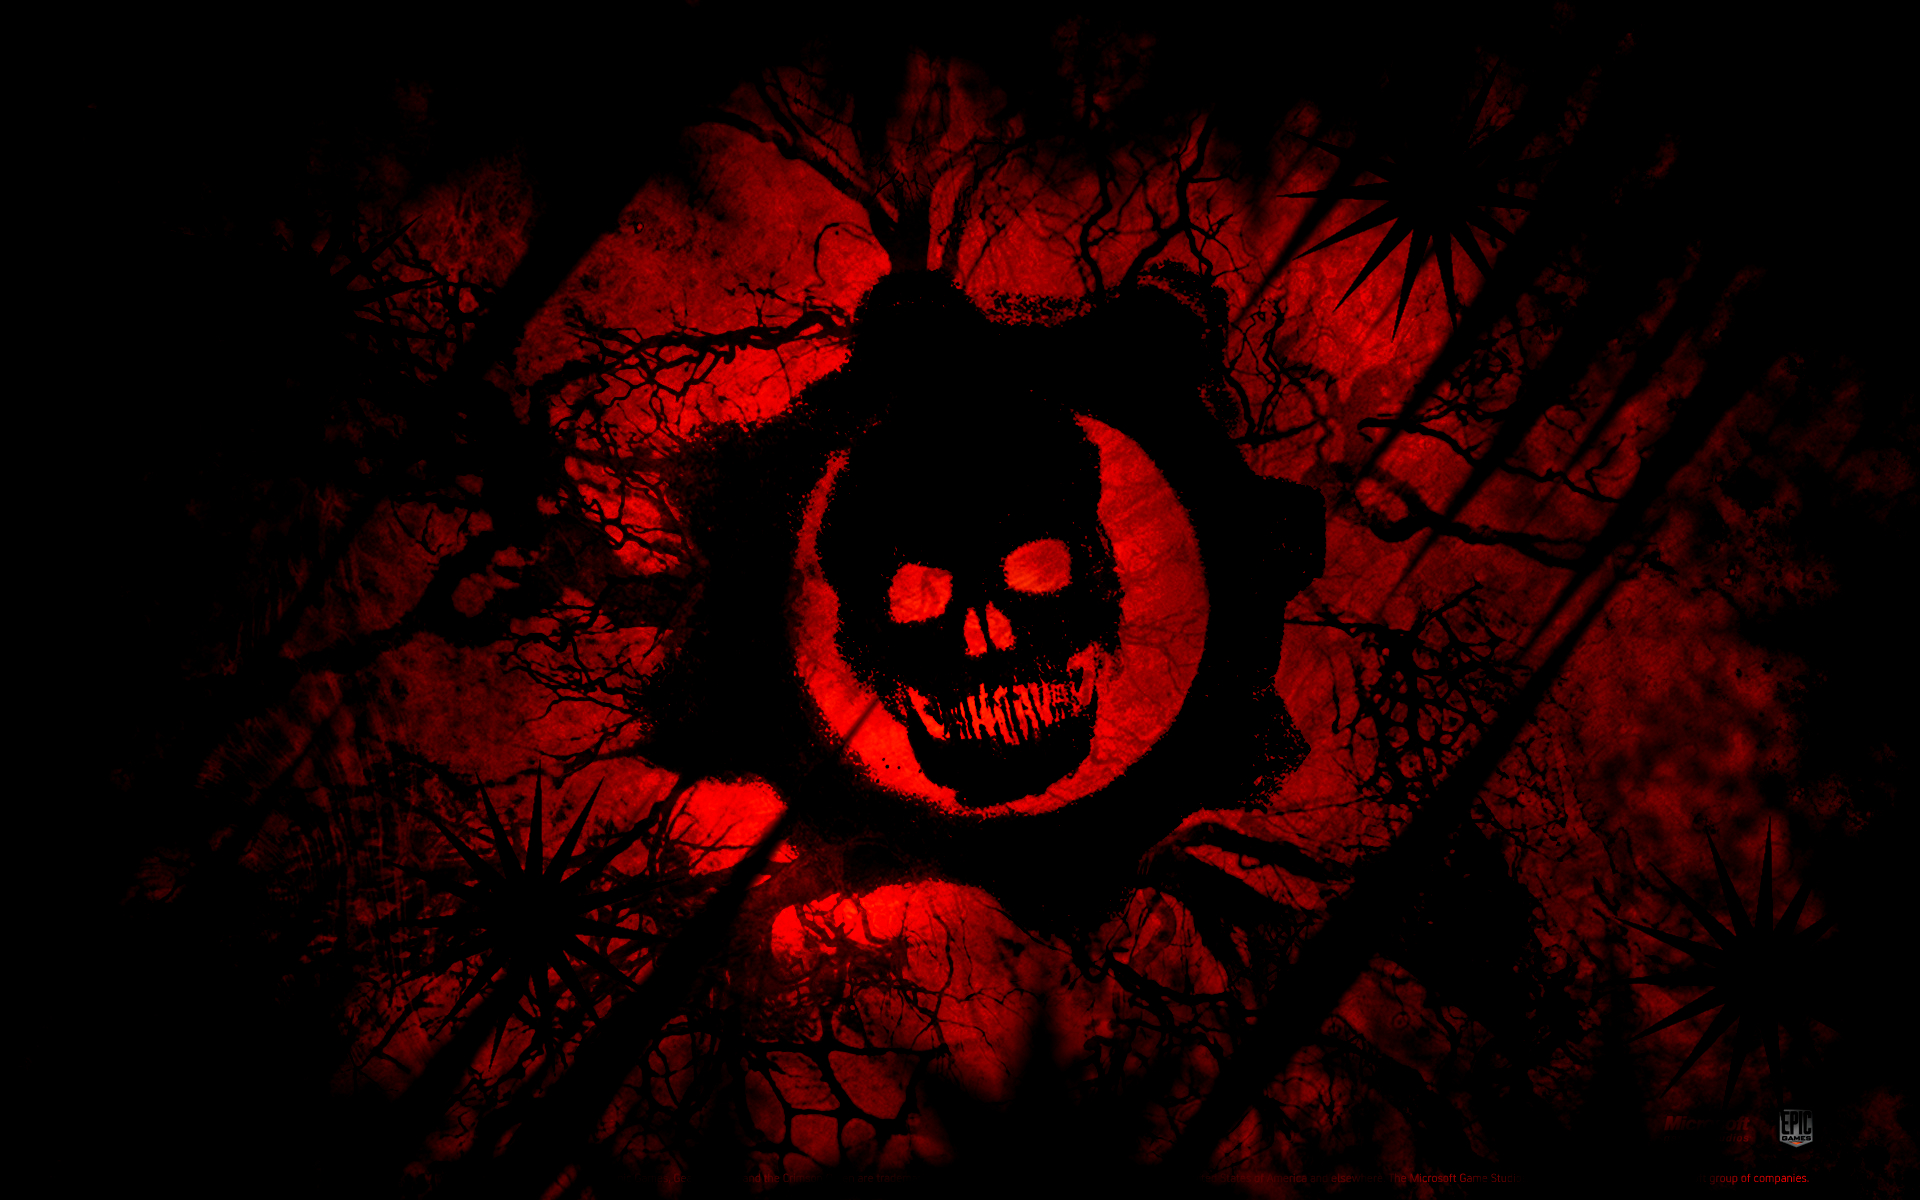 Gears of war logo 1 play reactor for Sign of portent 3